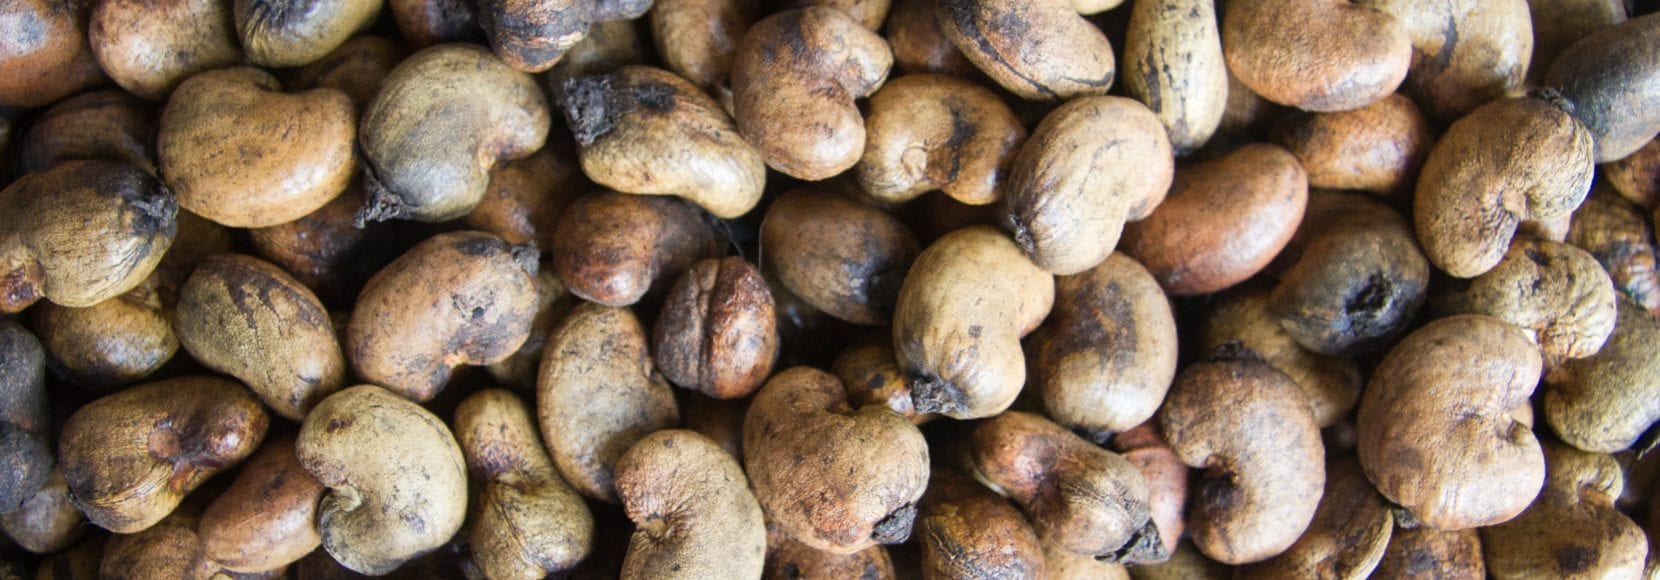 The cashew industry is an essential focus among TechnoServe programs. This photo features a close-up of cashews in shell, Agri-Business Company cashew factory, Touba, C™te d'Ivoire. Cashews in shell, Agri-Business Company cashew factory, Touba, Côte d'Ivoire.